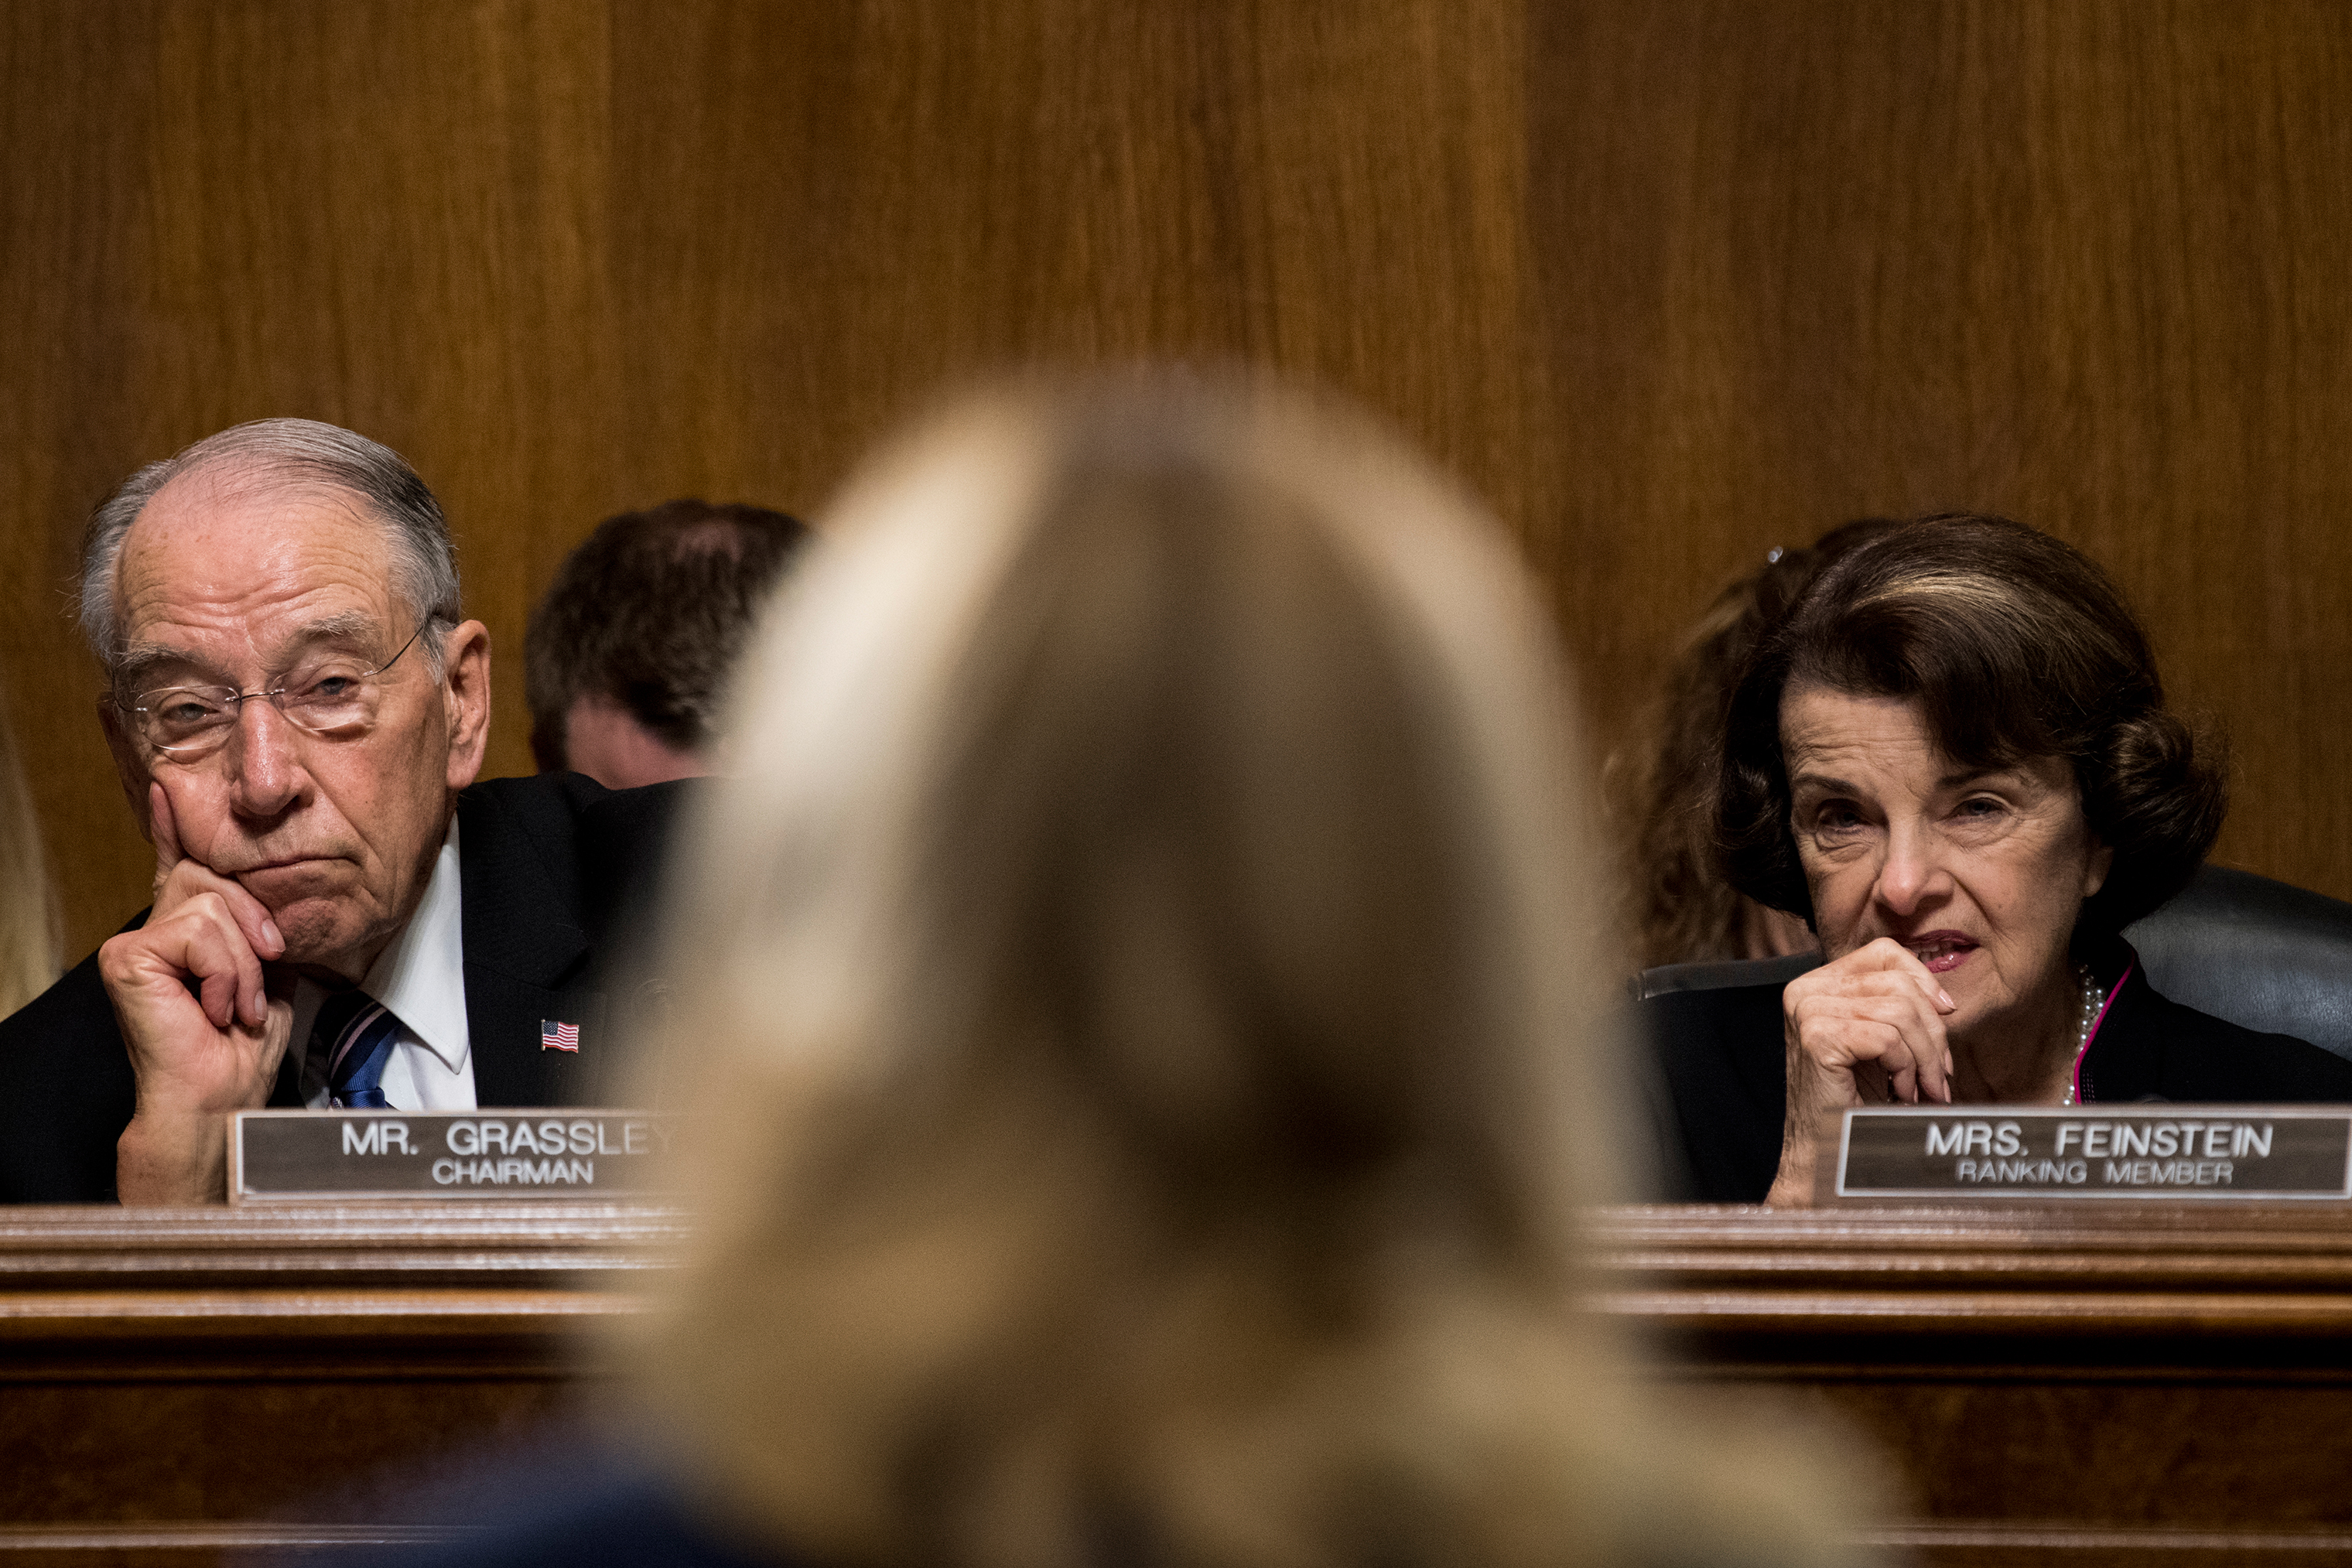 Sen. Chuck Grassley, R-Iowa, and Sen. Dianne Feinstein, D-Calif., listen as Dr. Christine Blasey Ford testifies on Sept. 27.